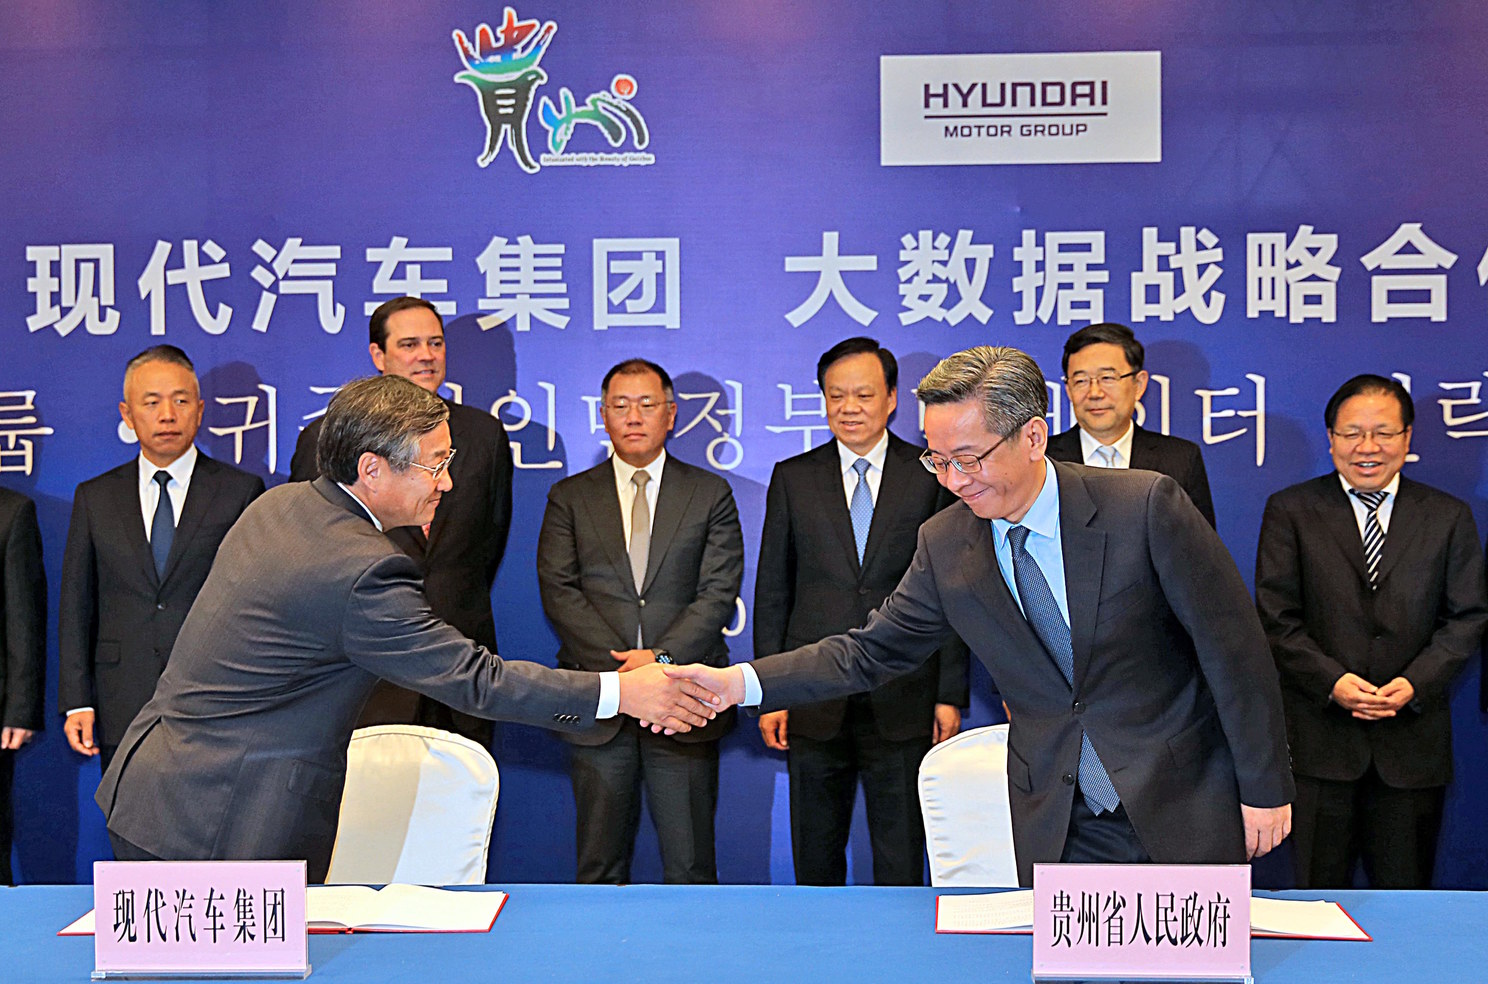 Hyundai China Big Data Center_2.jpg